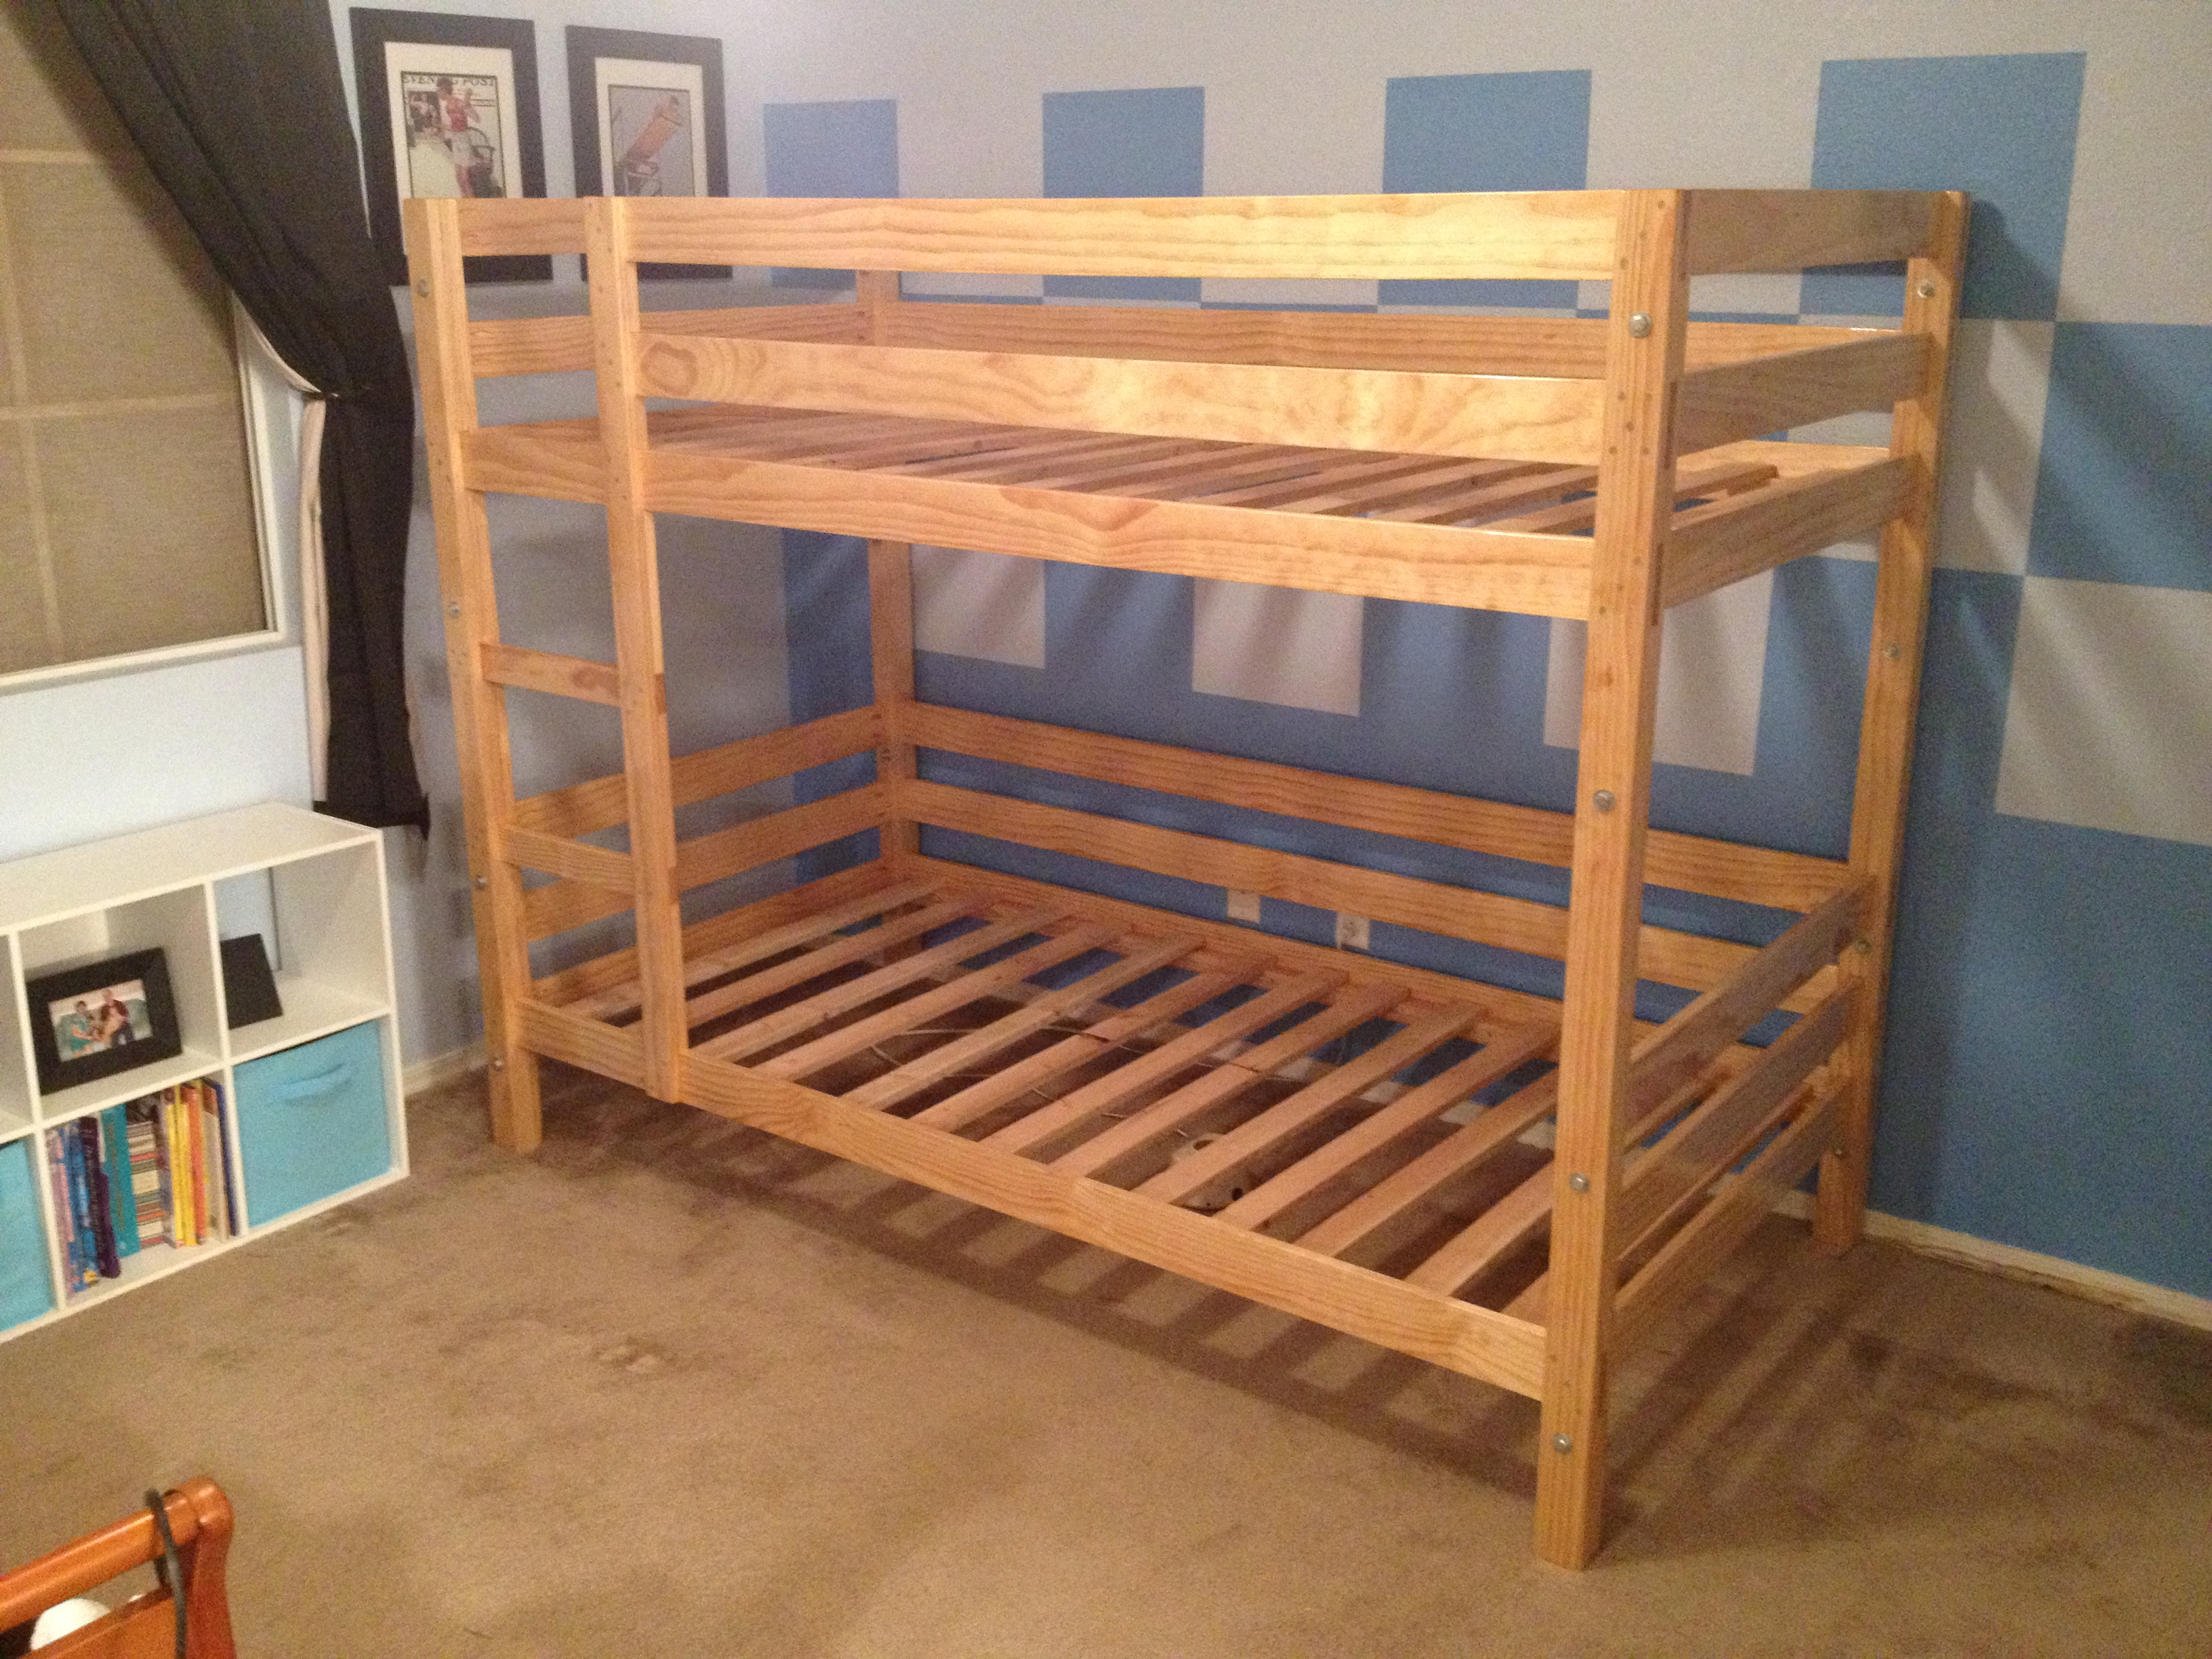 Ana white classic bunk beds diy projects for Castle bed plans pdf